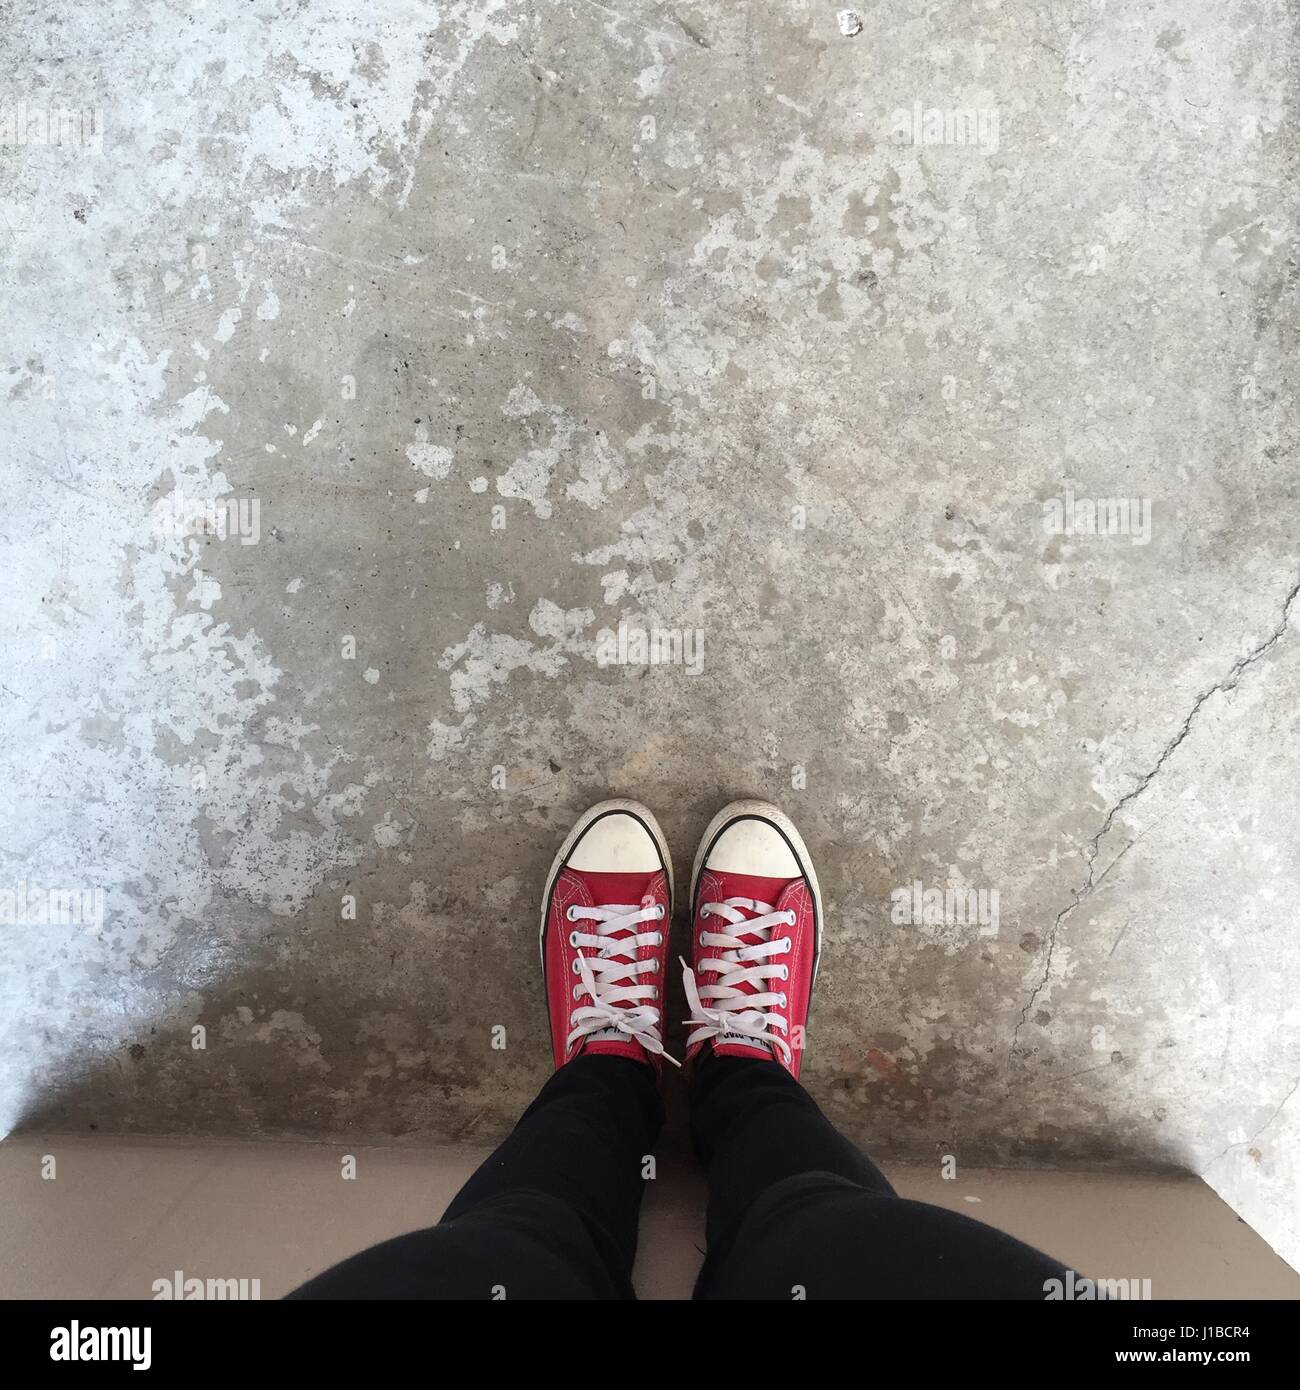 76cff096a4aa0e Feet From Above Concept, Teenage Person in Red Sneakers Standing on  Background Great For Any